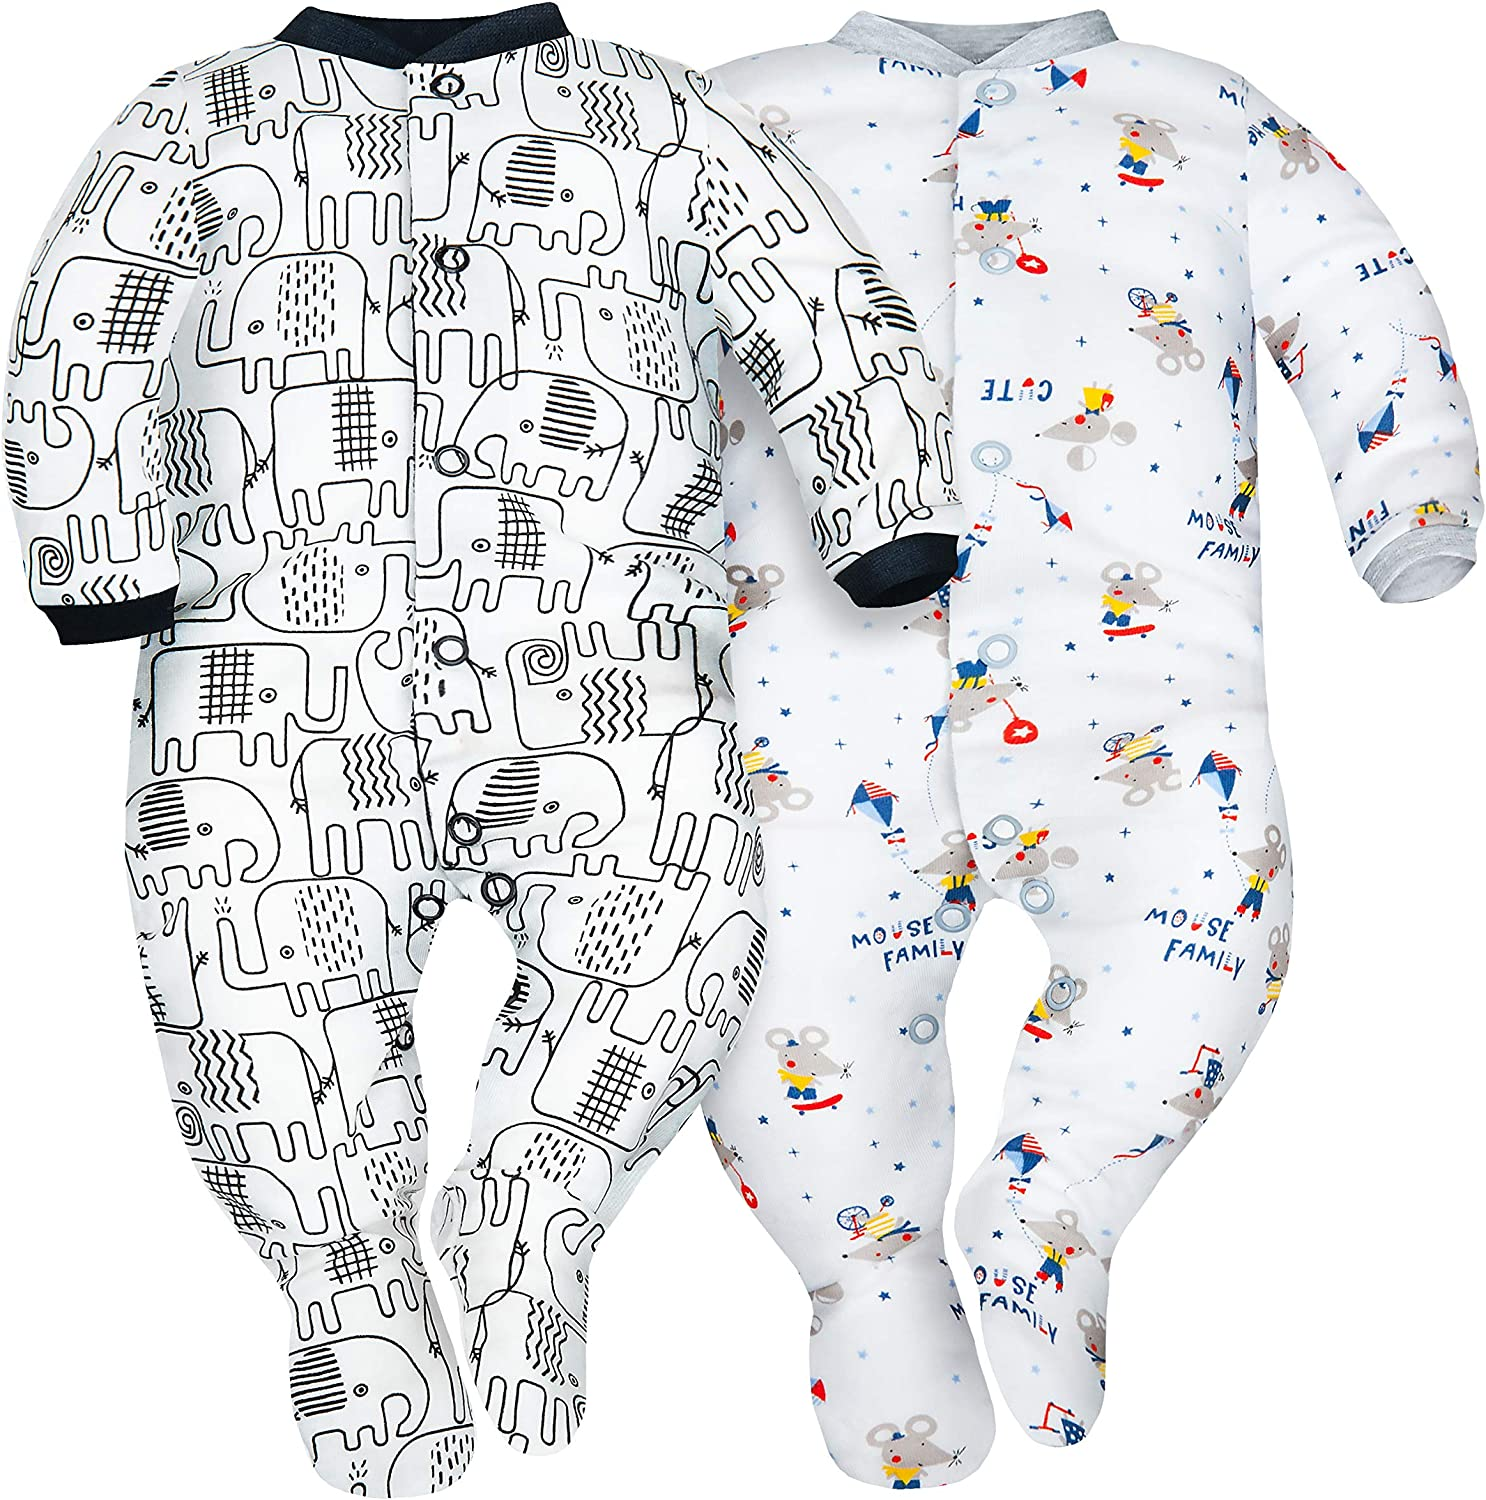 100/% Eco Cotton Pack of 3 Color Mix Sibinulo Baby Boys Baby Girls Sleepsuits with Feet Sizes from 0 to 24 Months 9-24 Anti-Slip